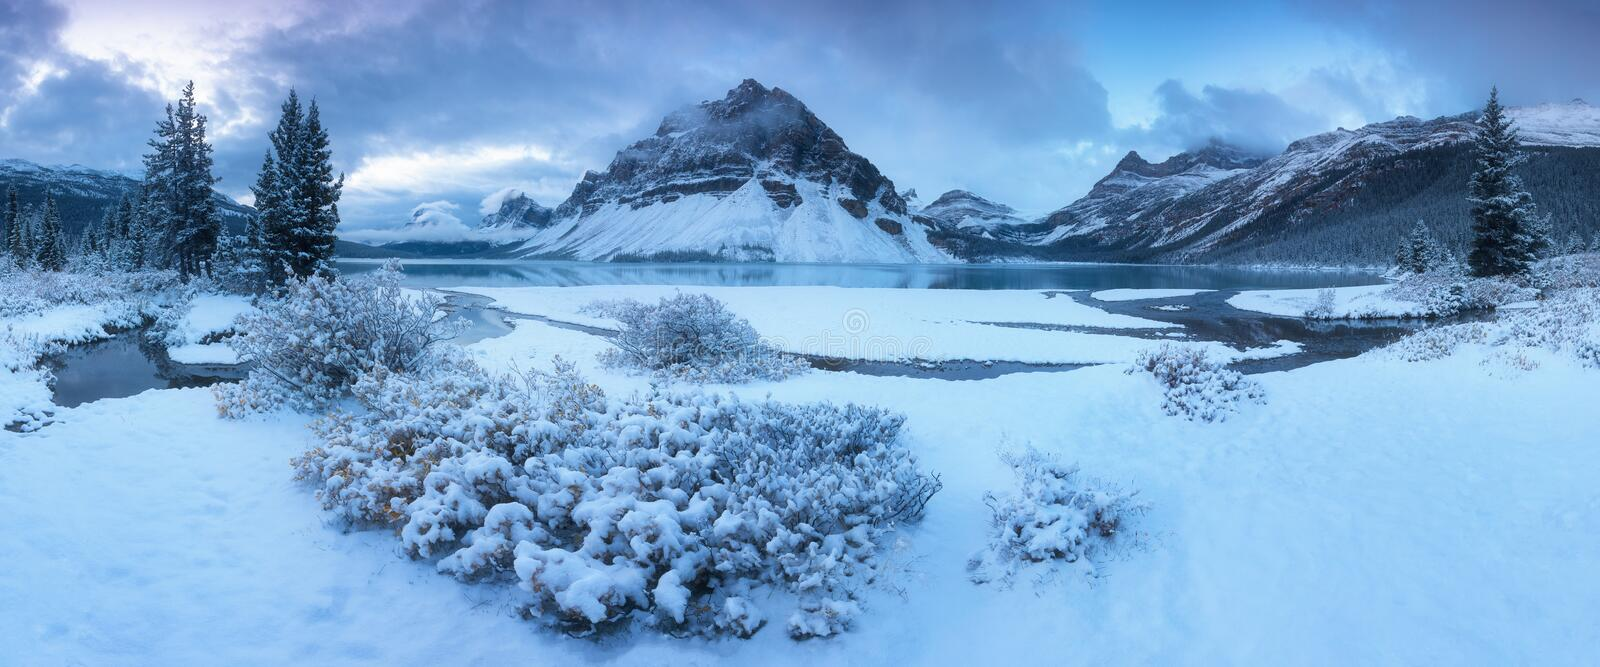 Early morning sunrise at the Bow lake and Crowfoot mountain. Bow Lake is a small lake in western Alberta, Canada. royalty free stock photos